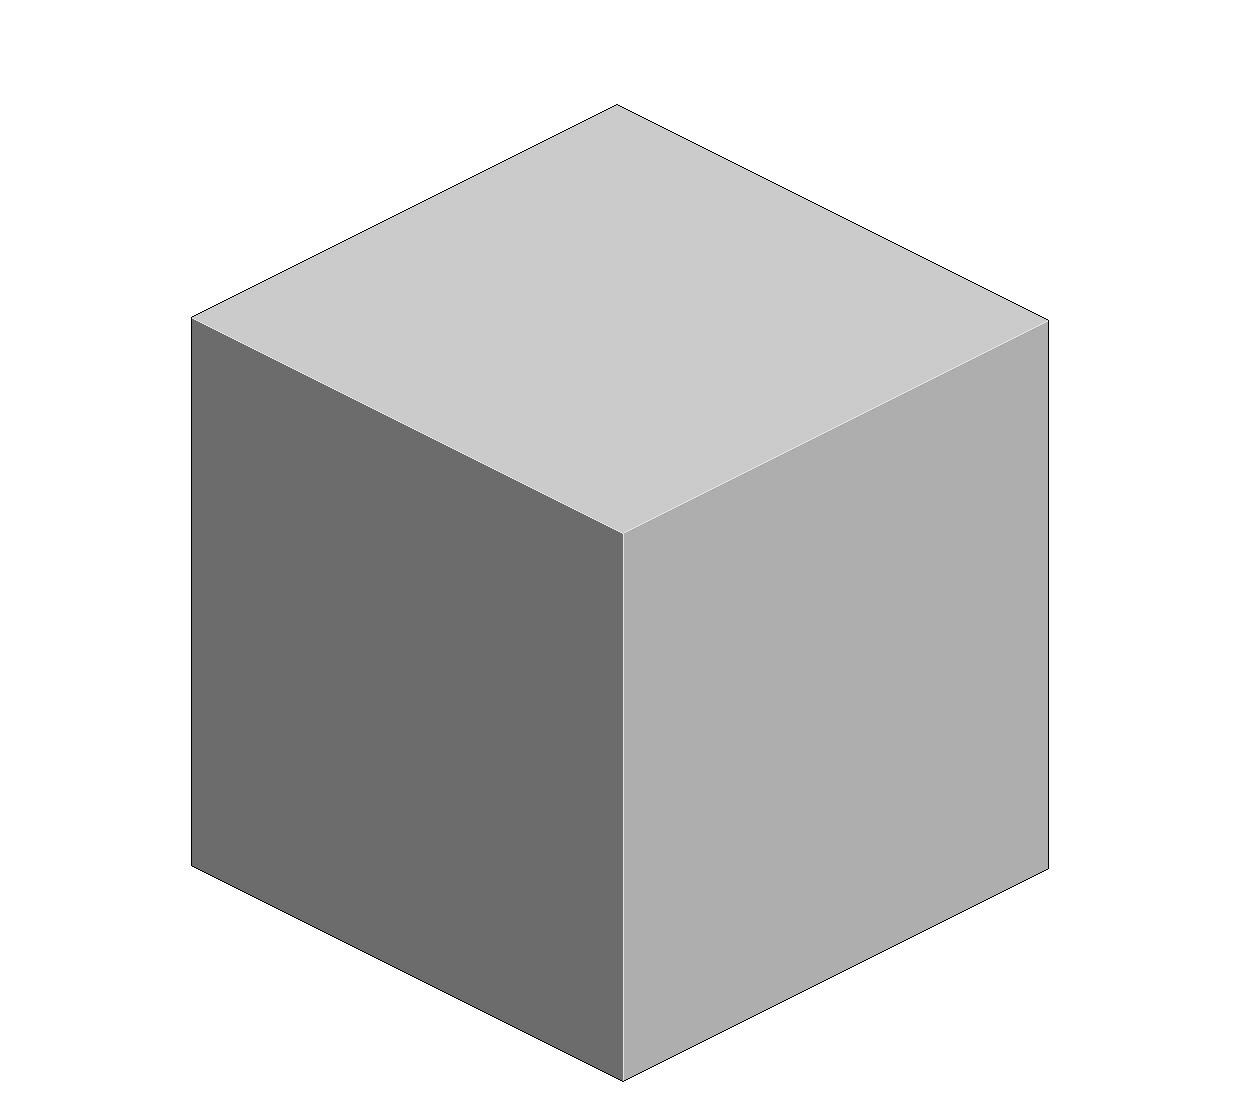 White cube png